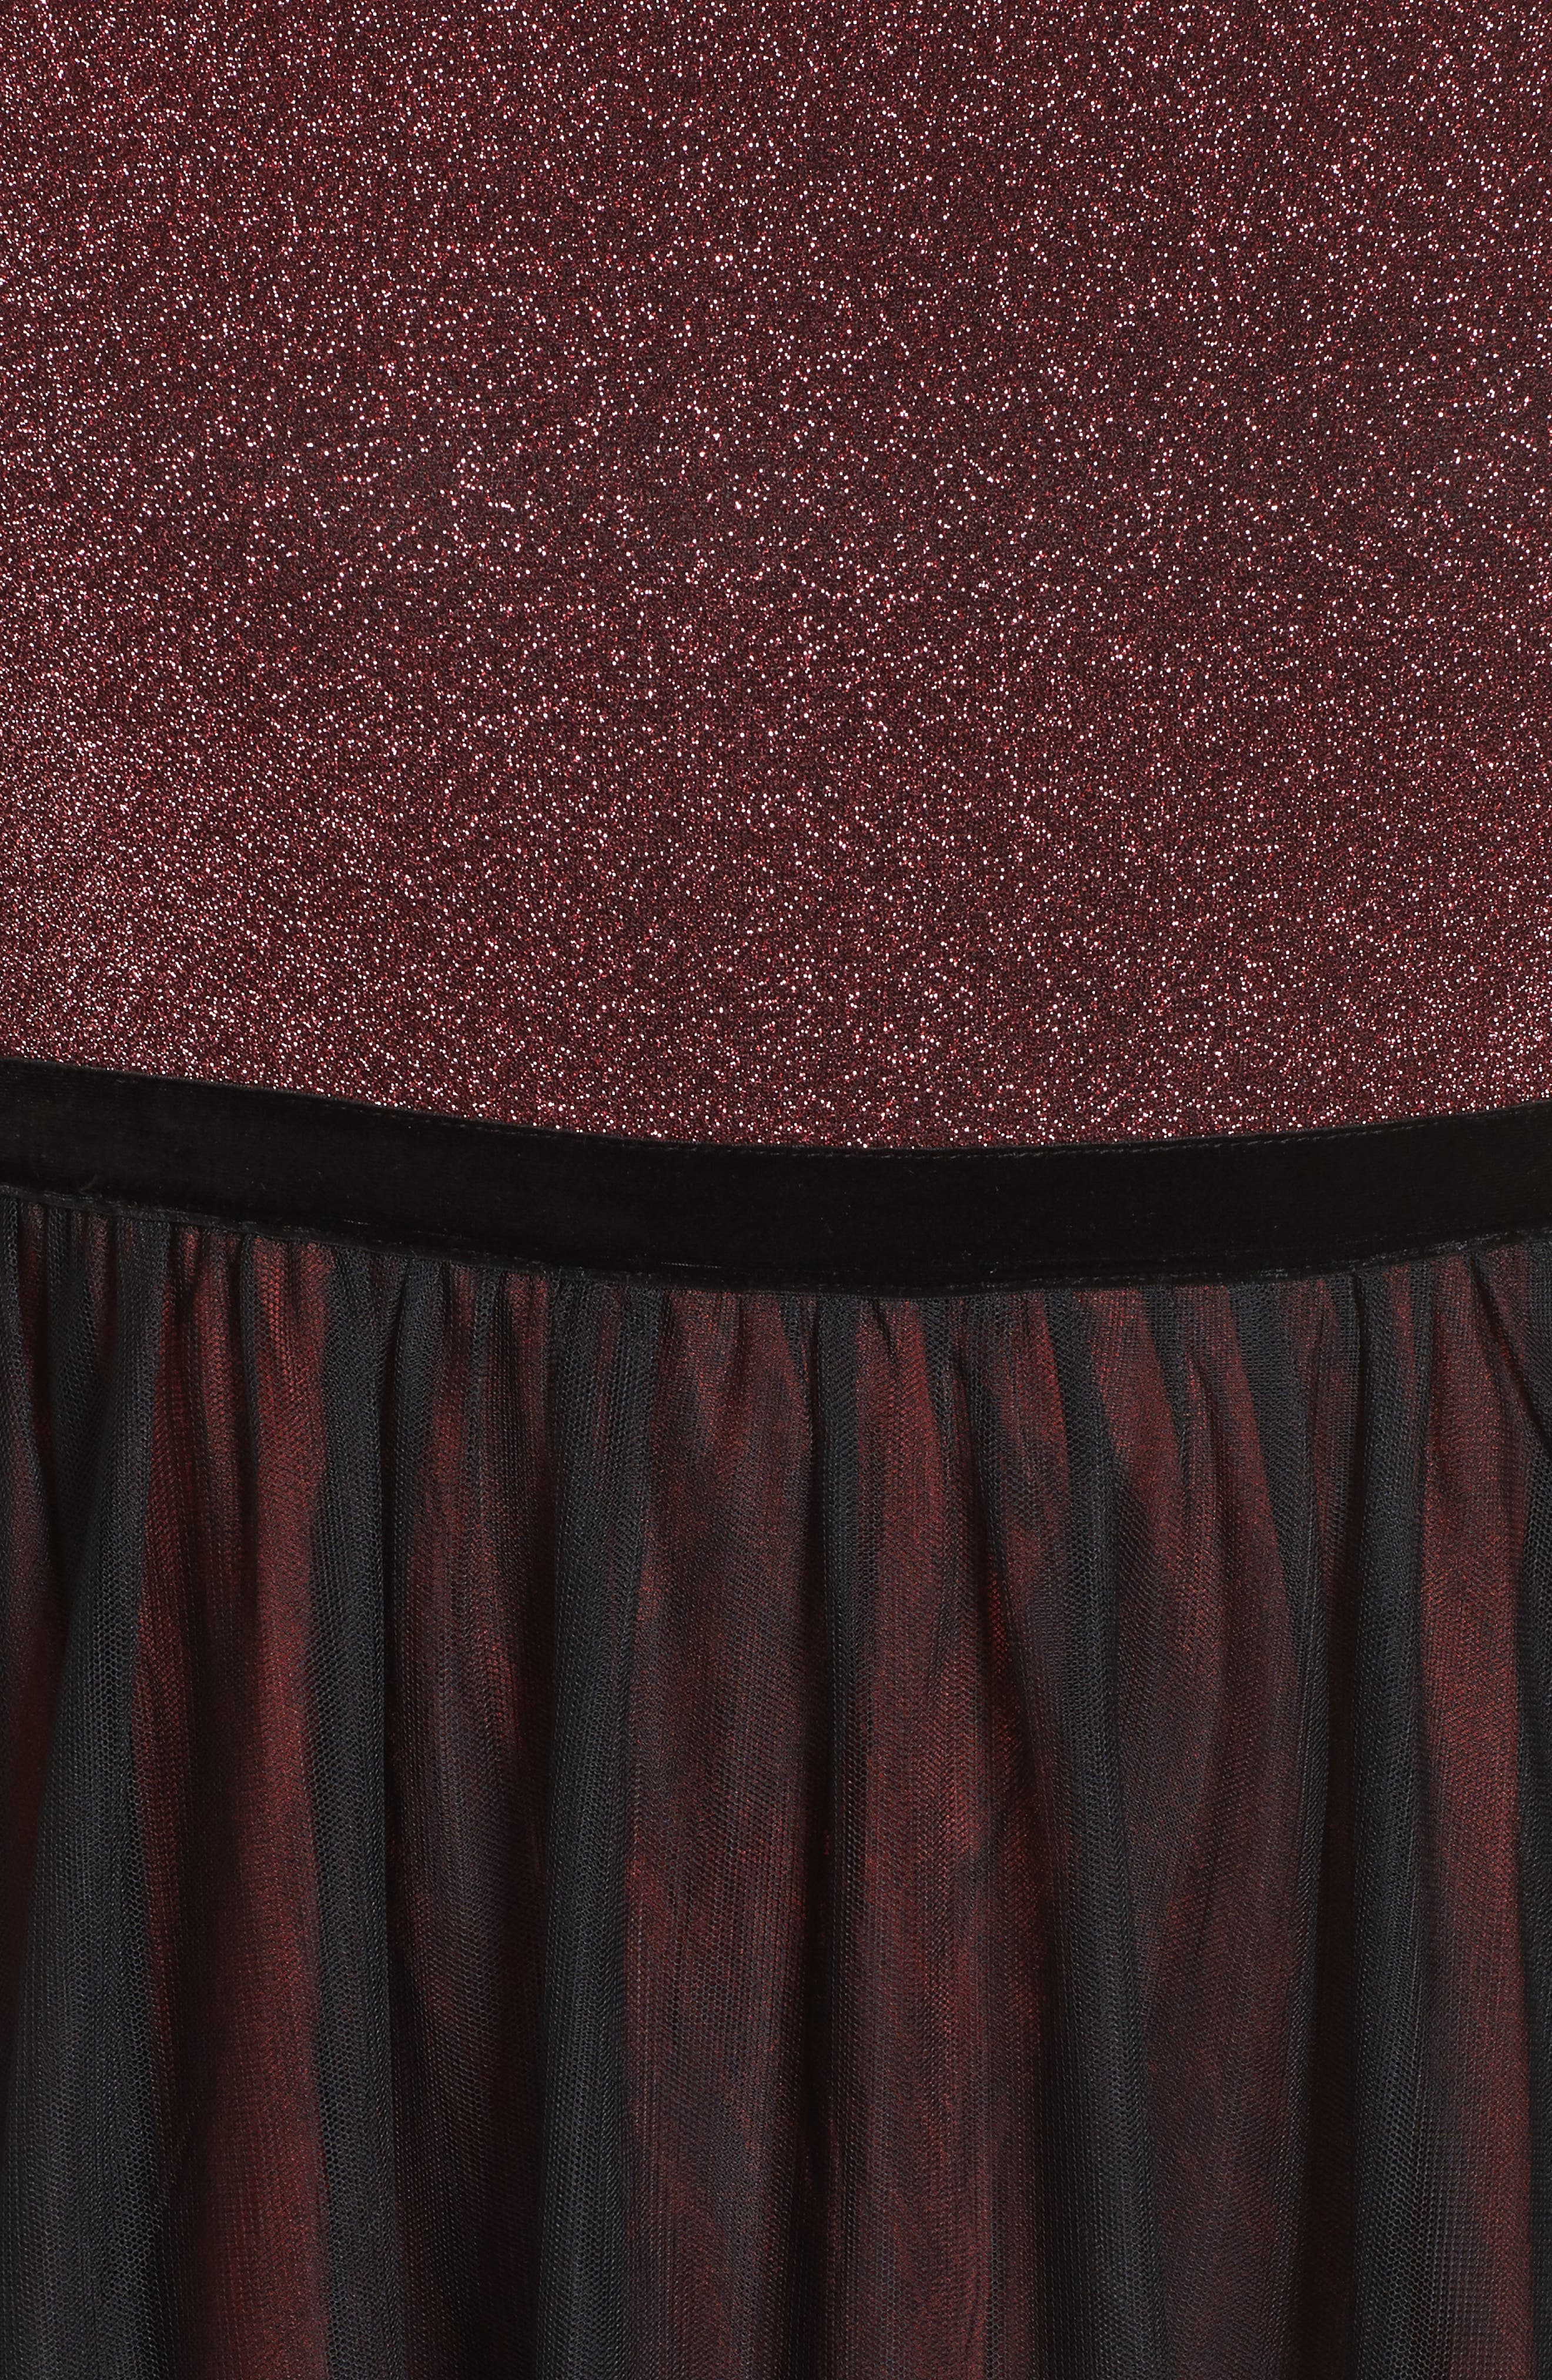 Metallic Knit & Tulle A-Line Gown,                             Alternate thumbnail 5, color,                             Black/ Berry